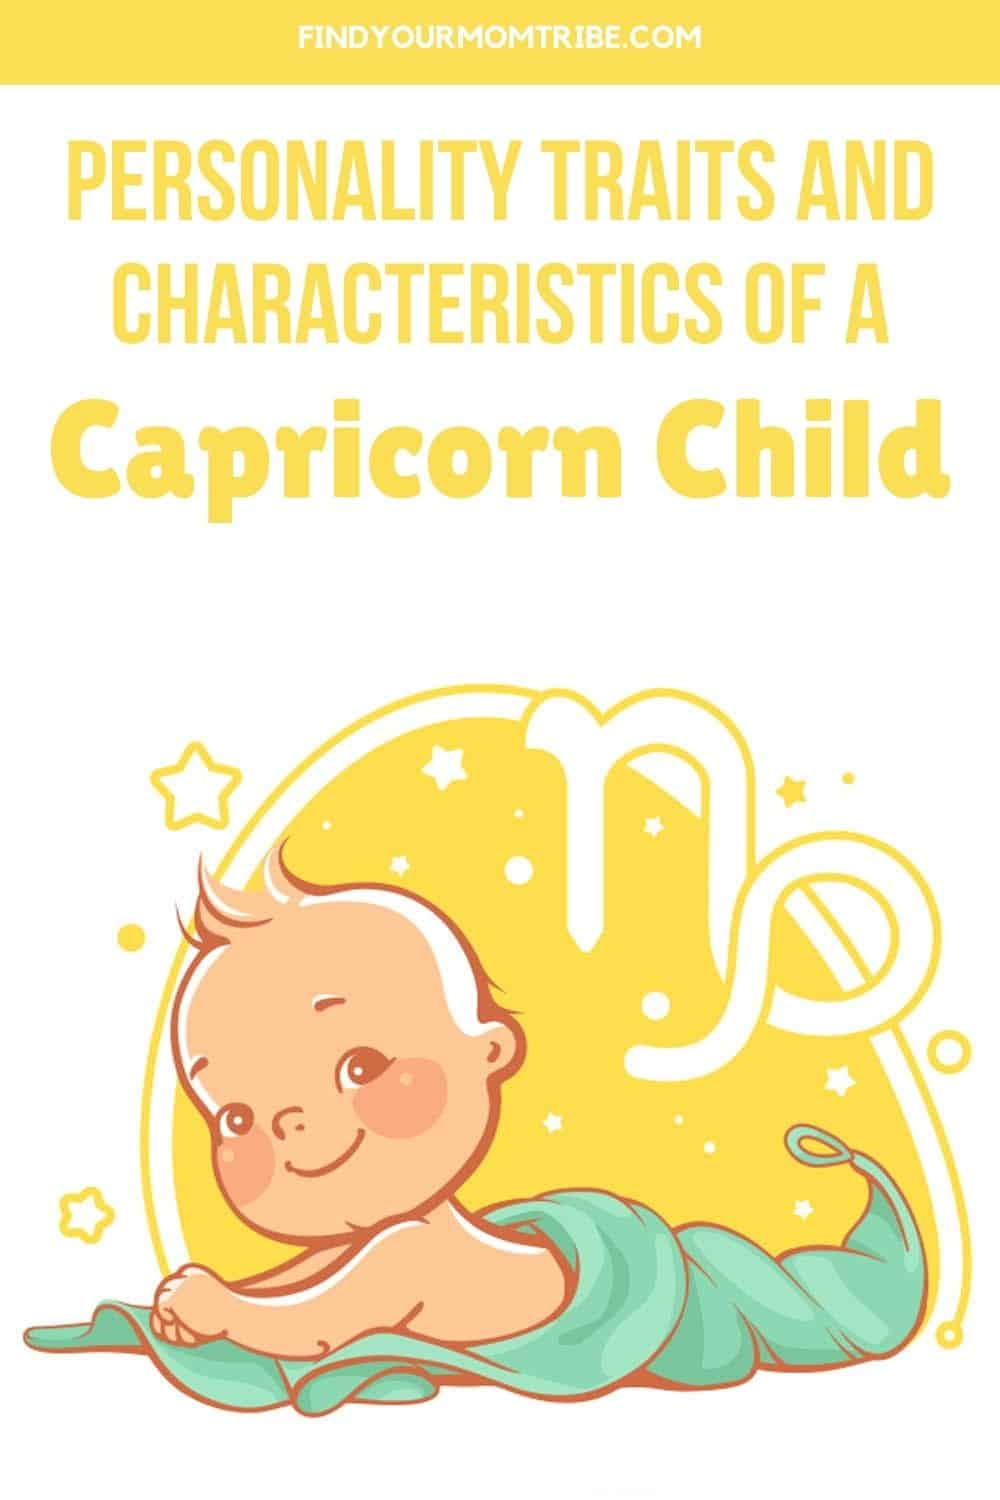 Personality Traits And Characteristics Of A Capricorn Child